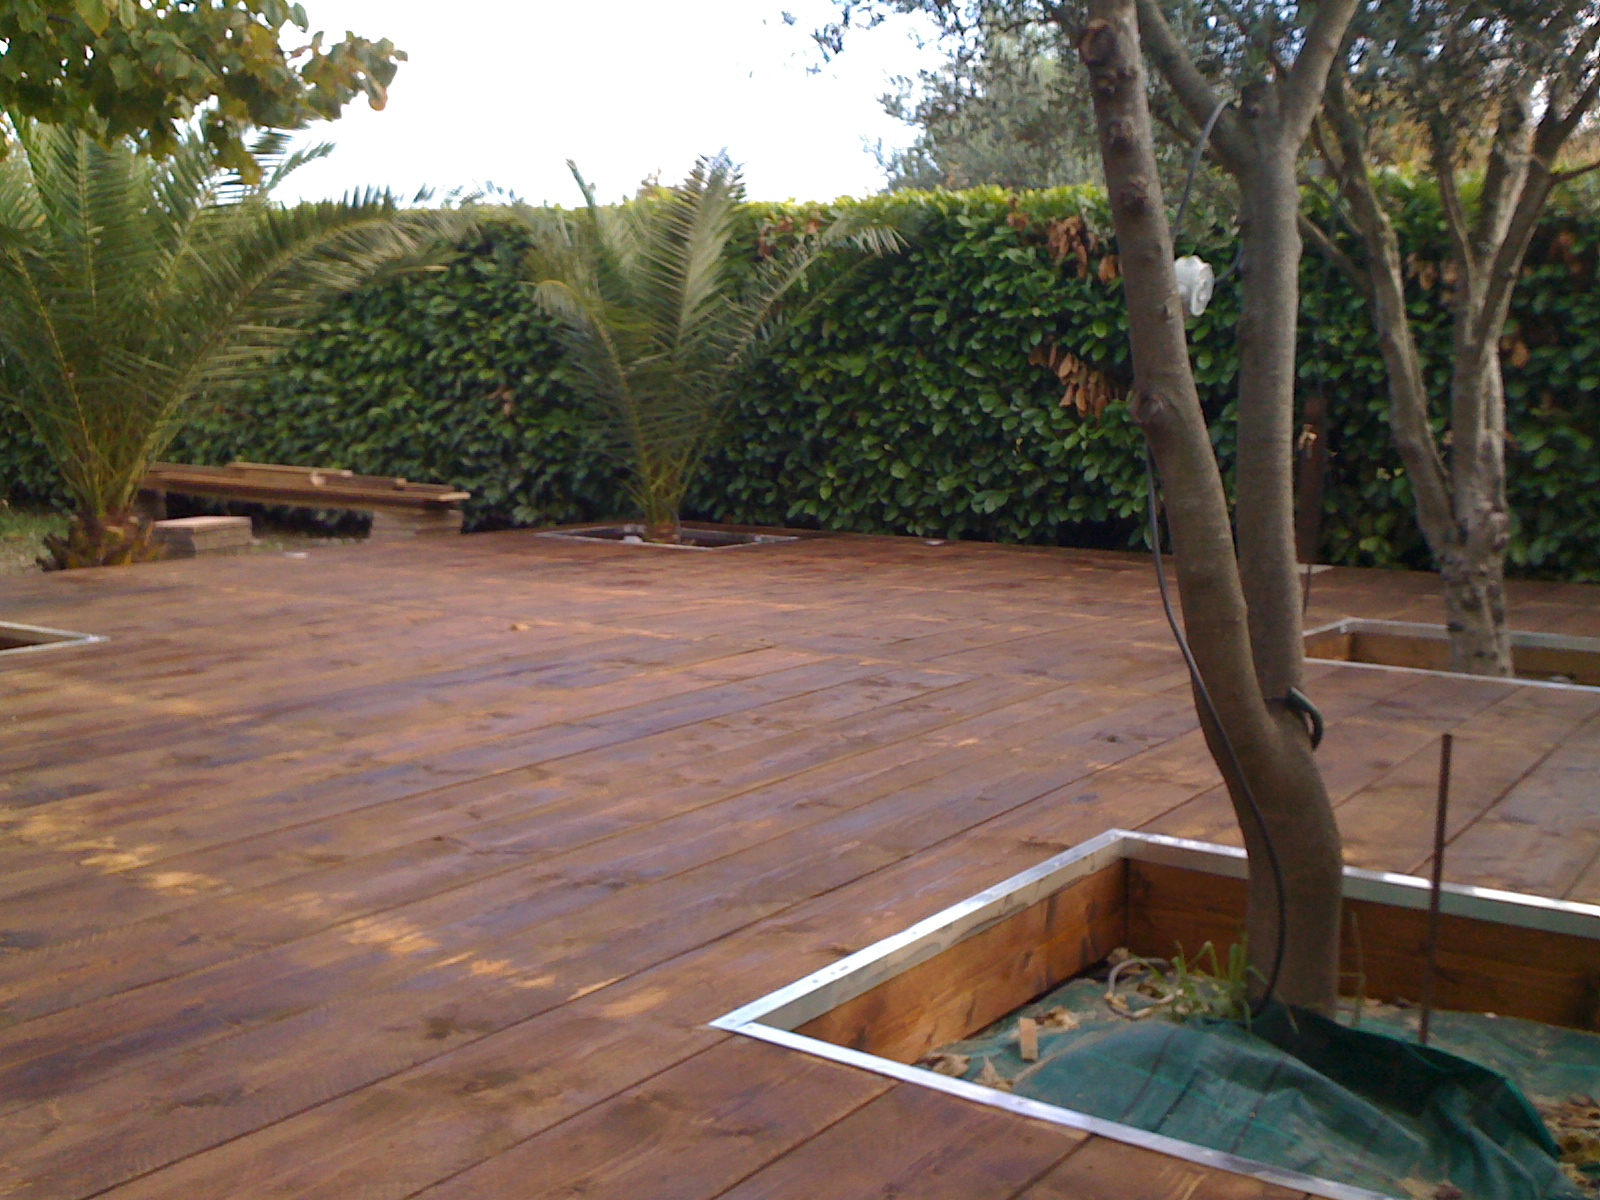 Plancher Terrasse Pas Cher Plancher Terrasse Pas Cher Perfect Relooking Dco Pas Cher Les